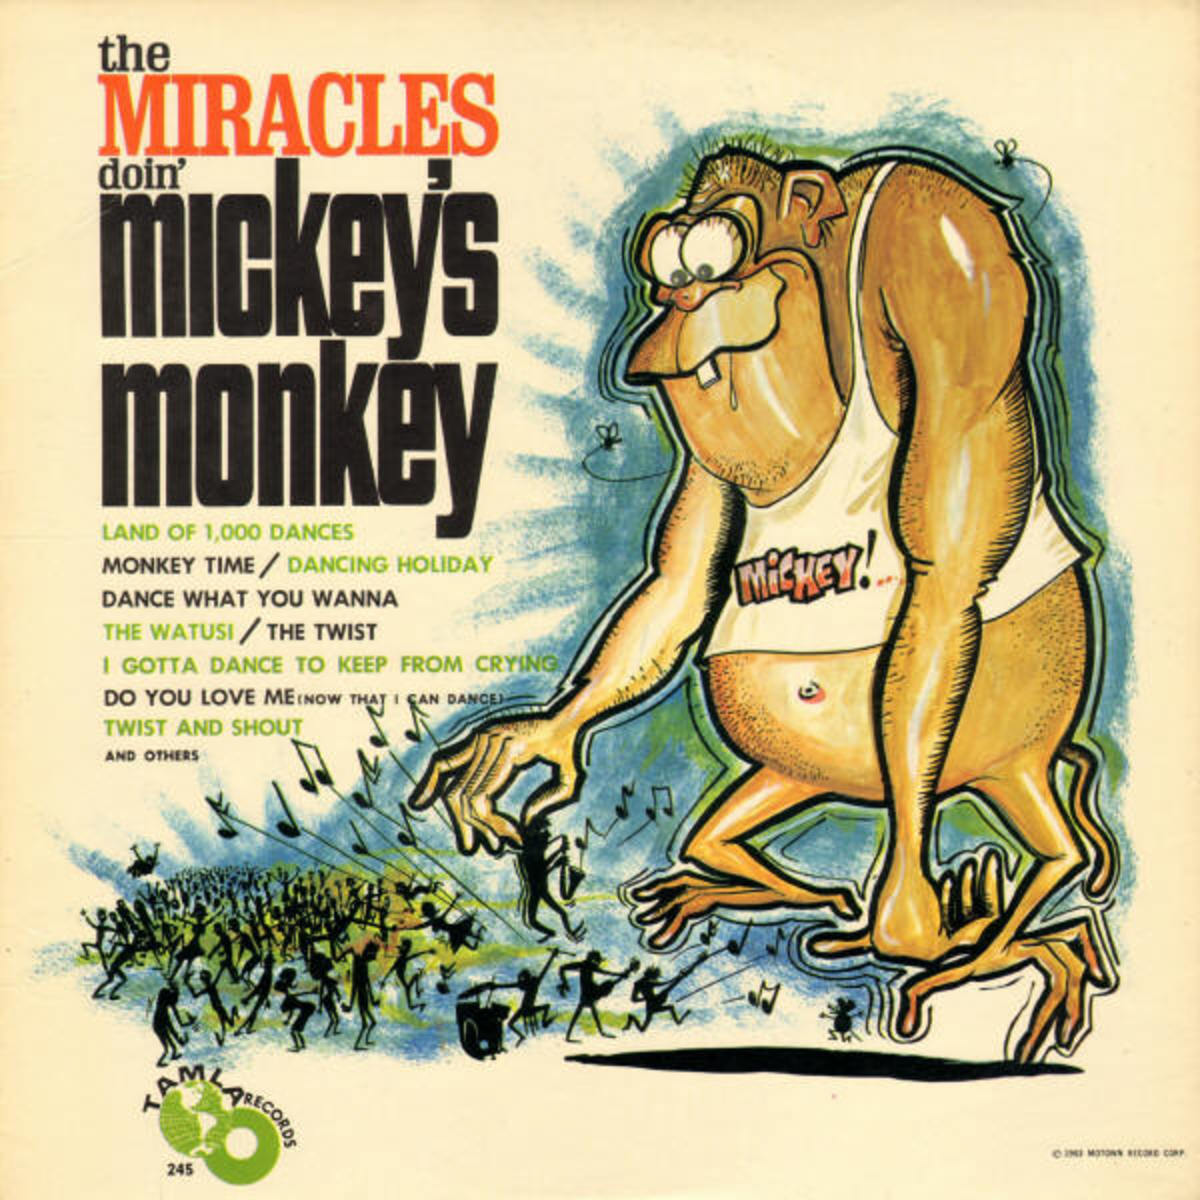 "The Miracles ""Mickeys Monkey"" Tamala Records TM 245 12"" LP Vinyl Record, US Pressing (1963) Album cover Art by Stanley Mouse"